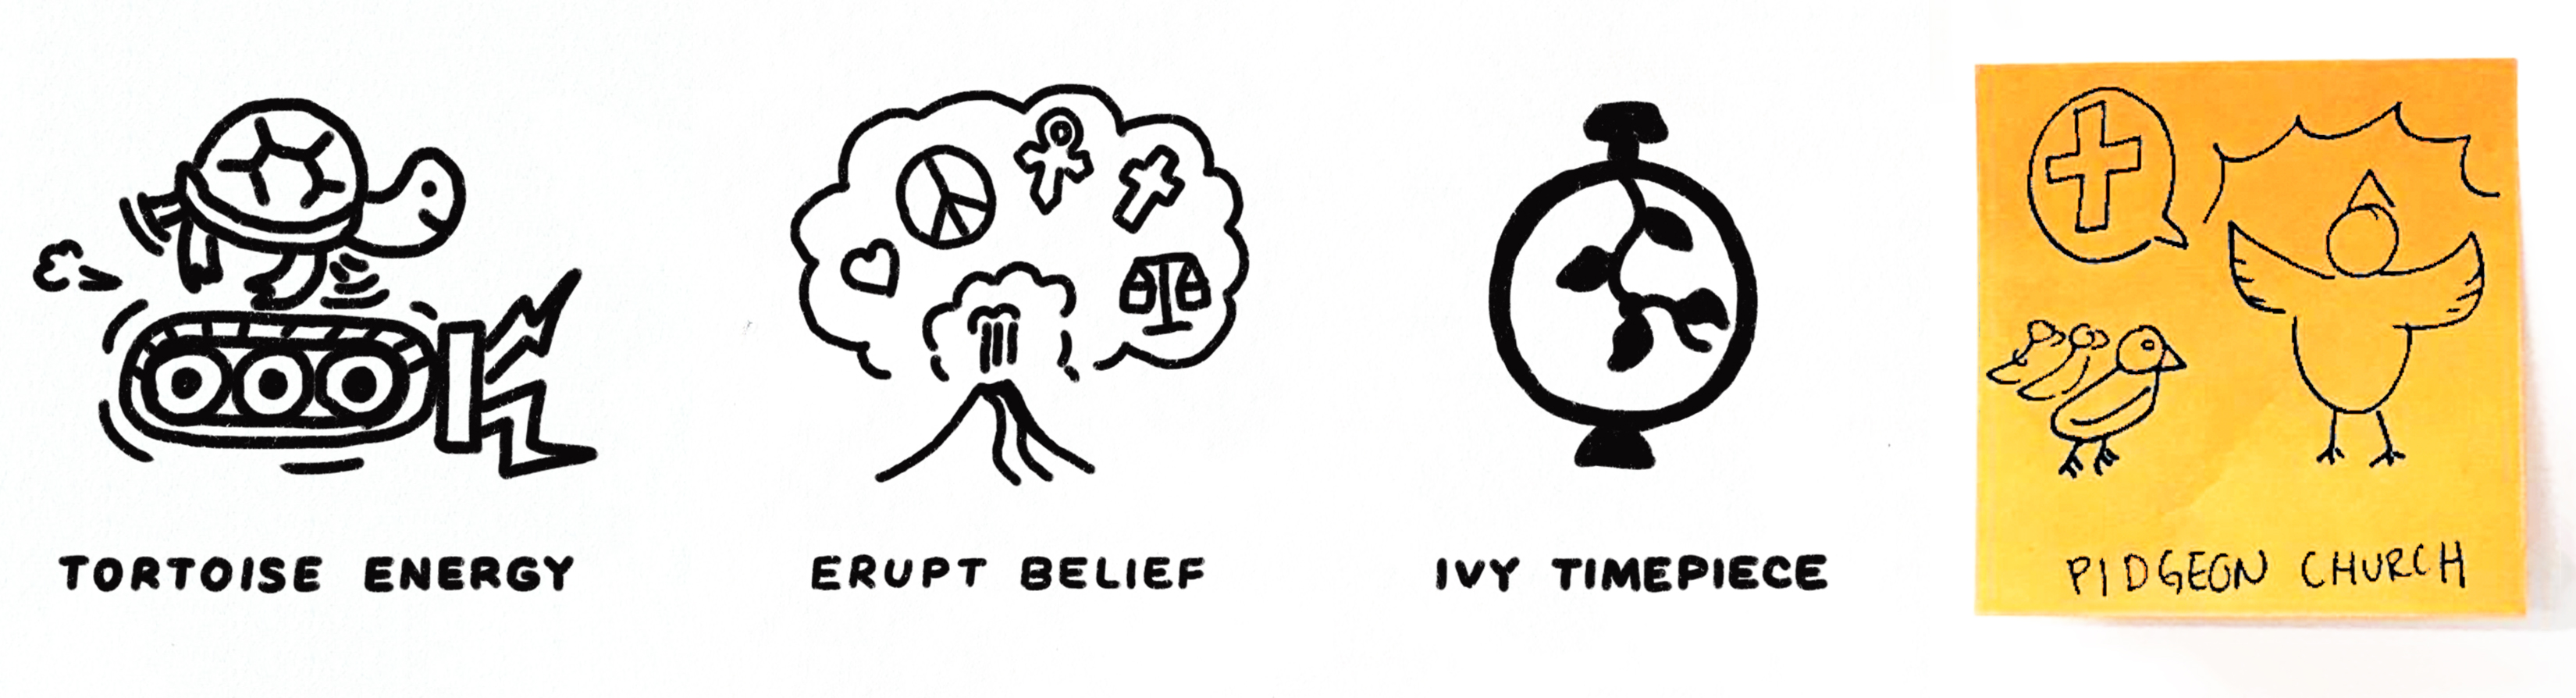 Drawings of tortoise energy, erupt belief, ivy timepiece, and pigeon church